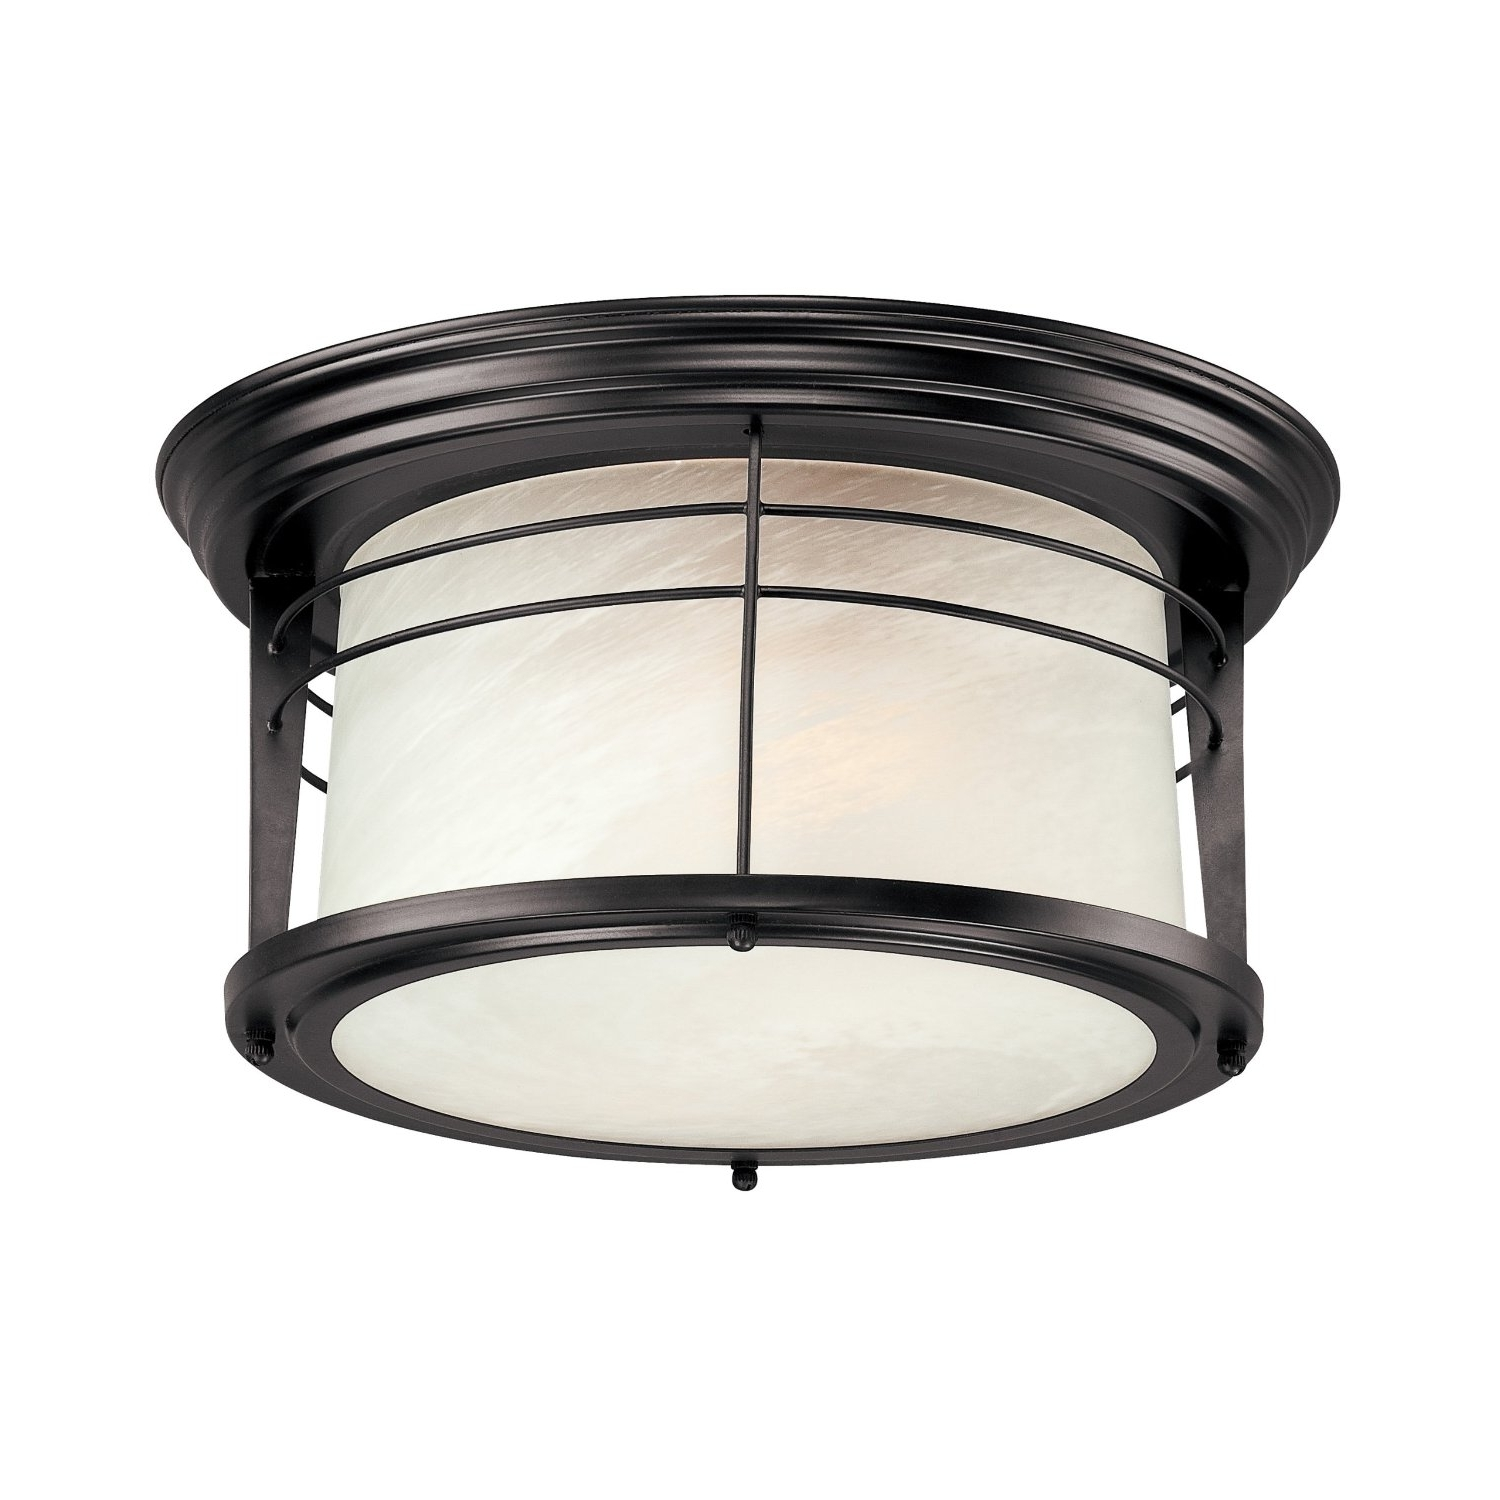 Outdoor Ceiling Mount Motion Light: 21 Terrific Outdoor Motion With Regard To Best And Newest Outdoor Ceiling Sensor Lights (View 9 of 20)